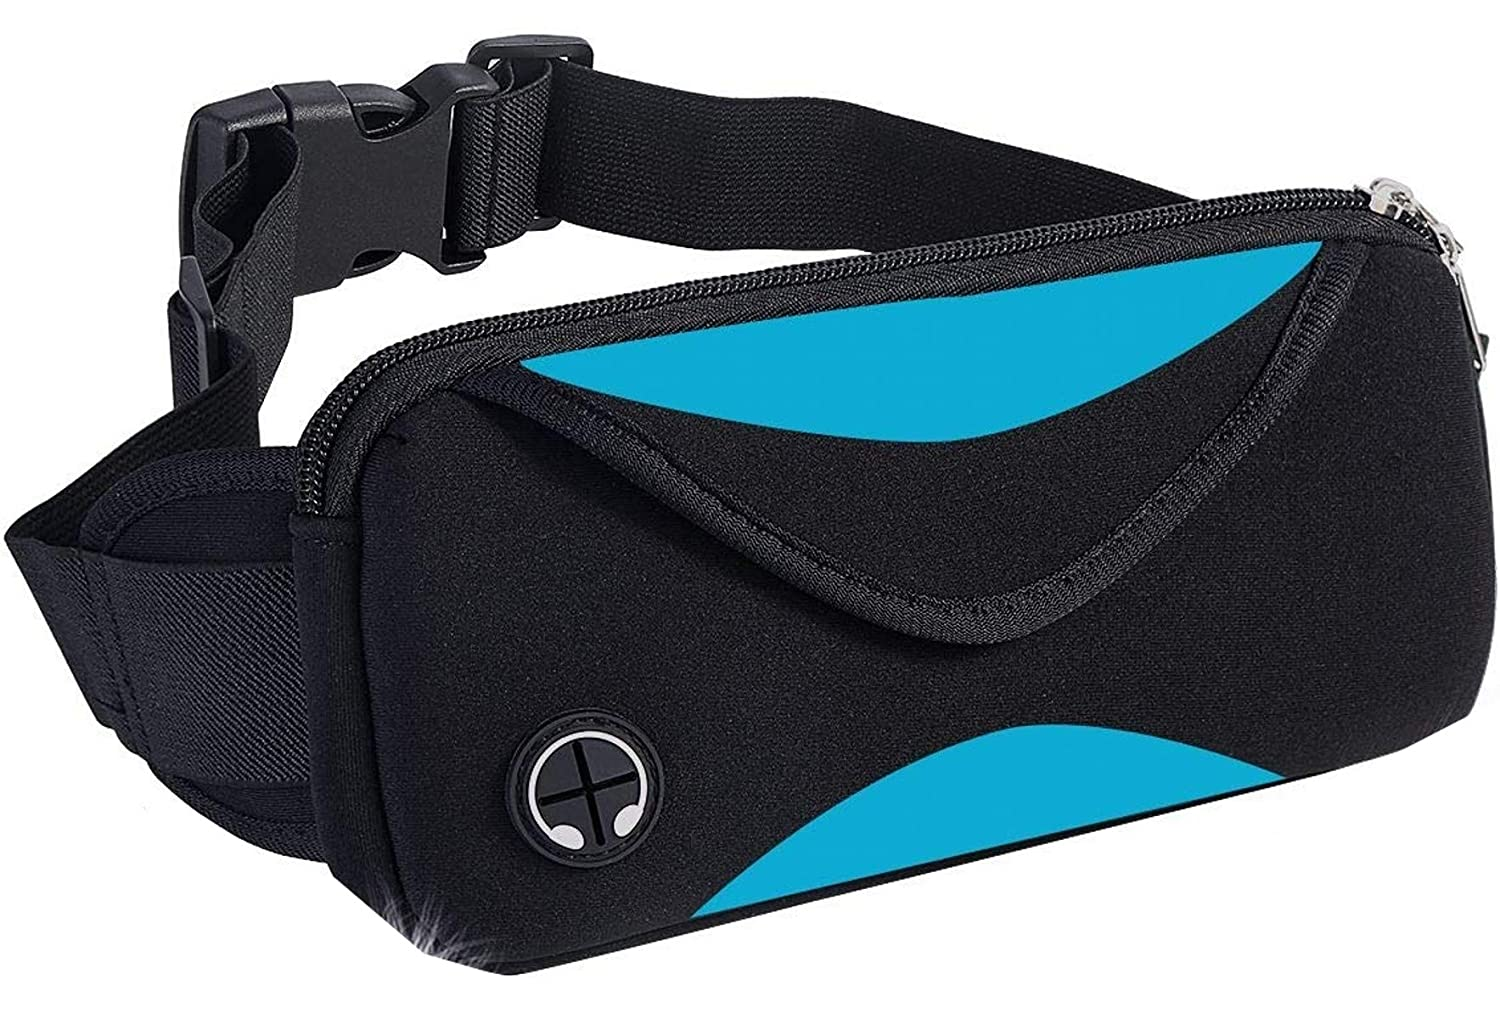 Vimi Running Belt with Extender Belt,Fanny Pack Workout Belt Sports Waist Pack Belt Pouch Bag for Apple iPhone XR XS 8 X 7 and Samsung in Running Walking Cycling Hiking